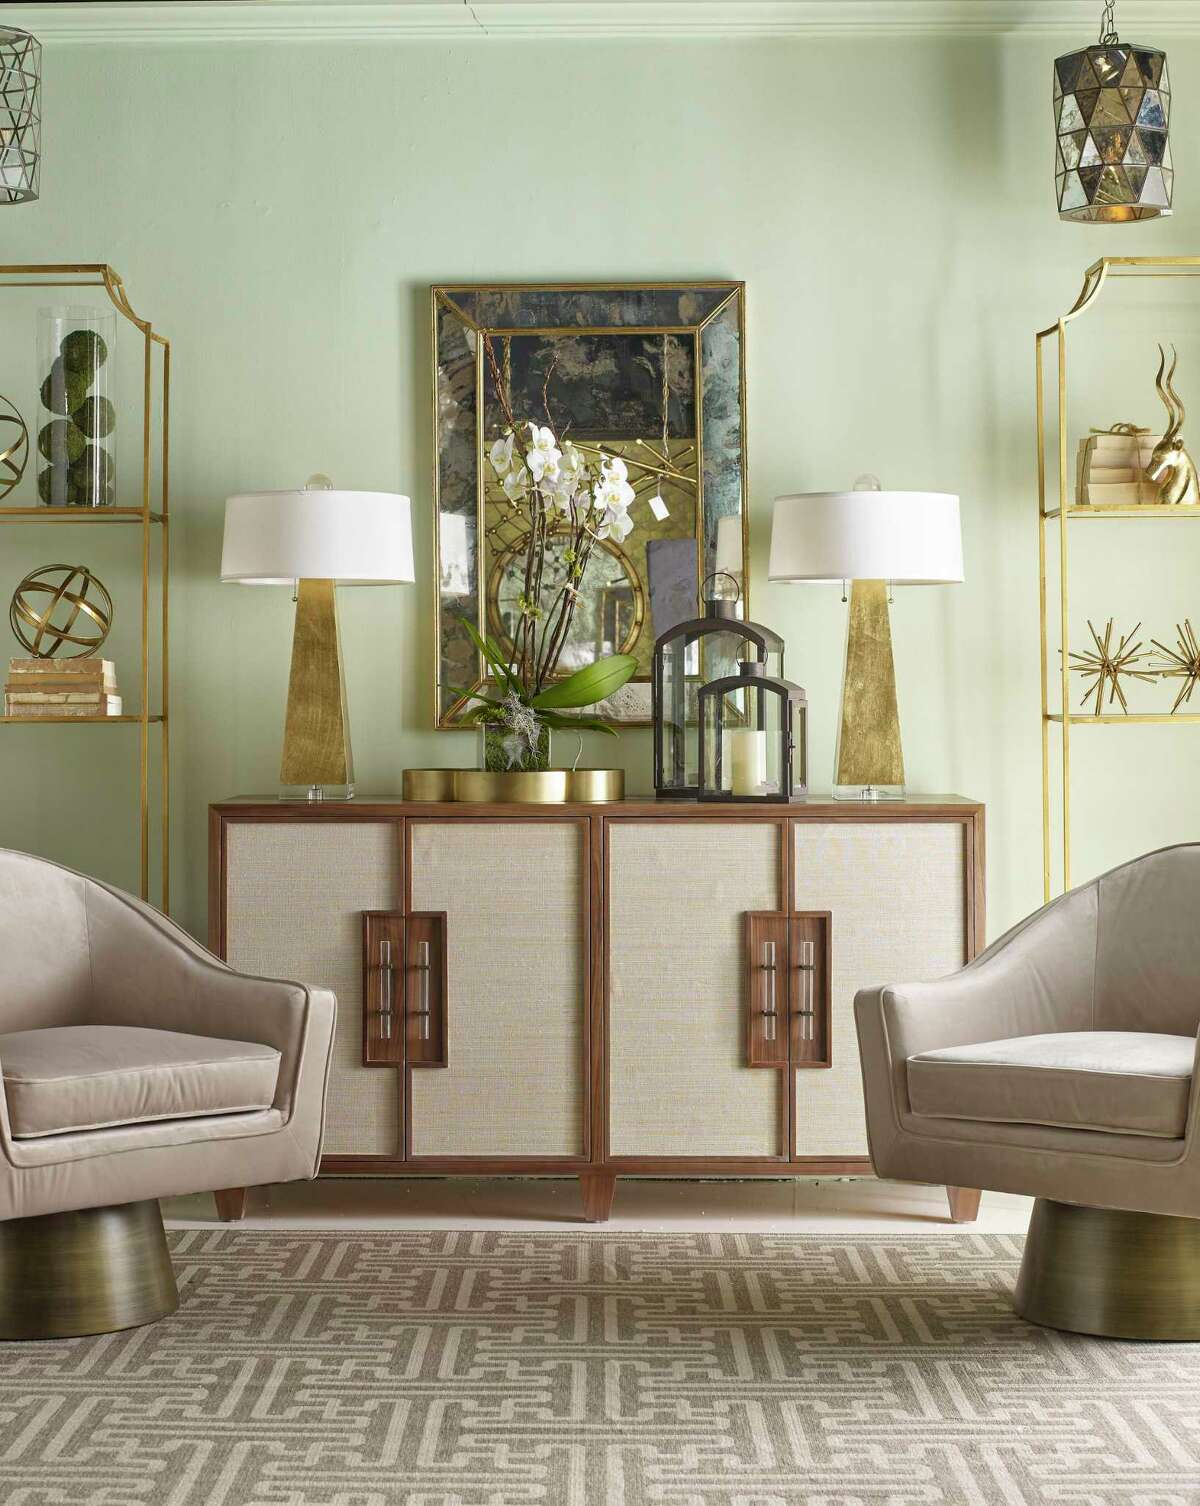 The Clark console by Worlds Away includes caning details on its doors. It was part of new collections shown at the Fall 2019 High Point Market.